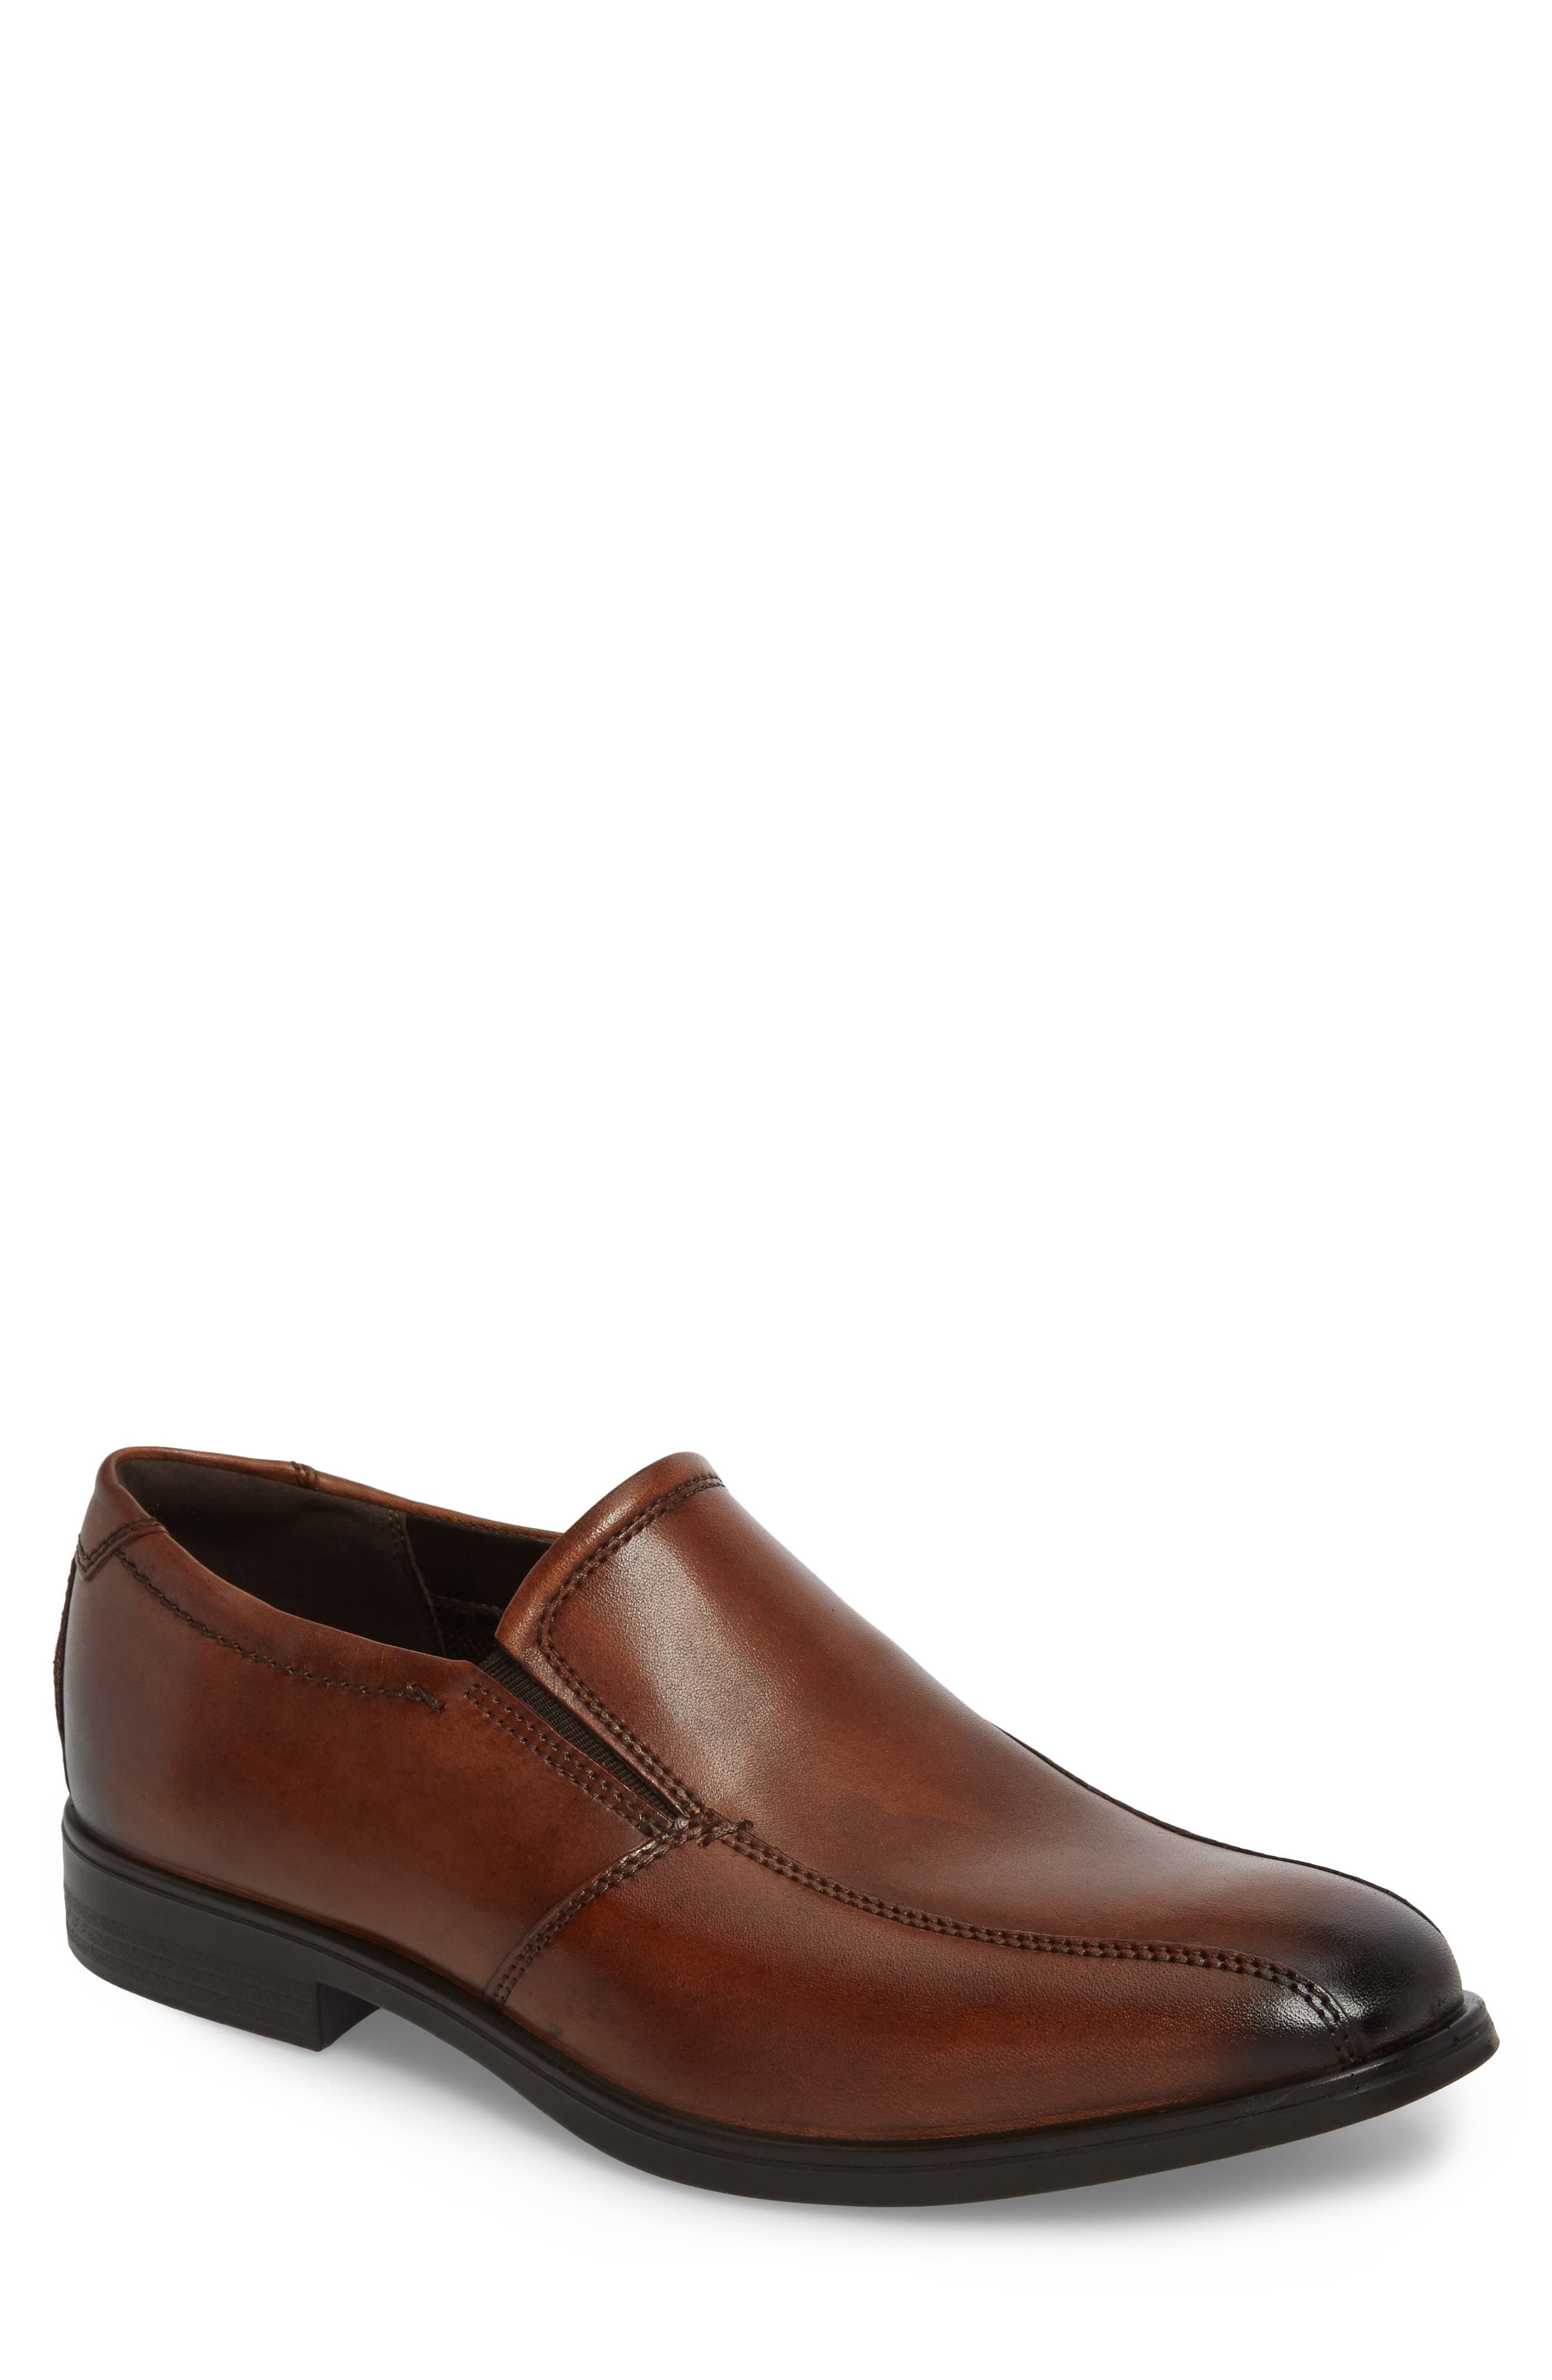 Melbourne Venetian Loafer,                             Main thumbnail 1, color,                             Amber Leather